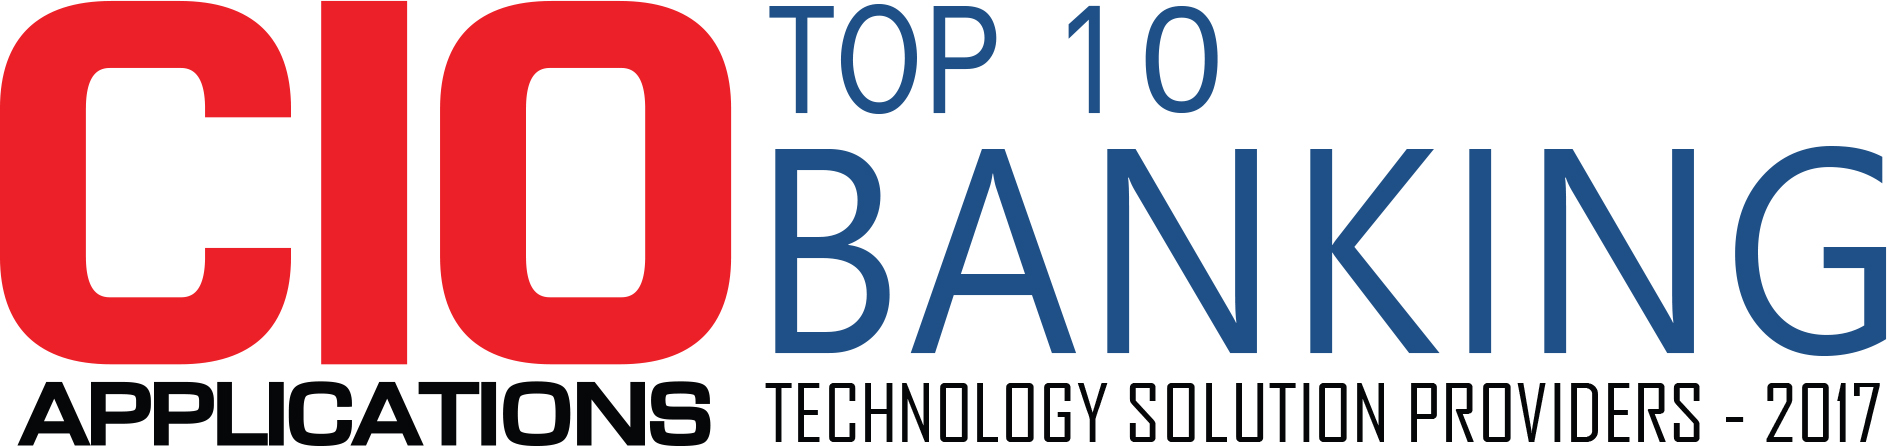 Top 10 Banking Technology Solution Companies - 2017